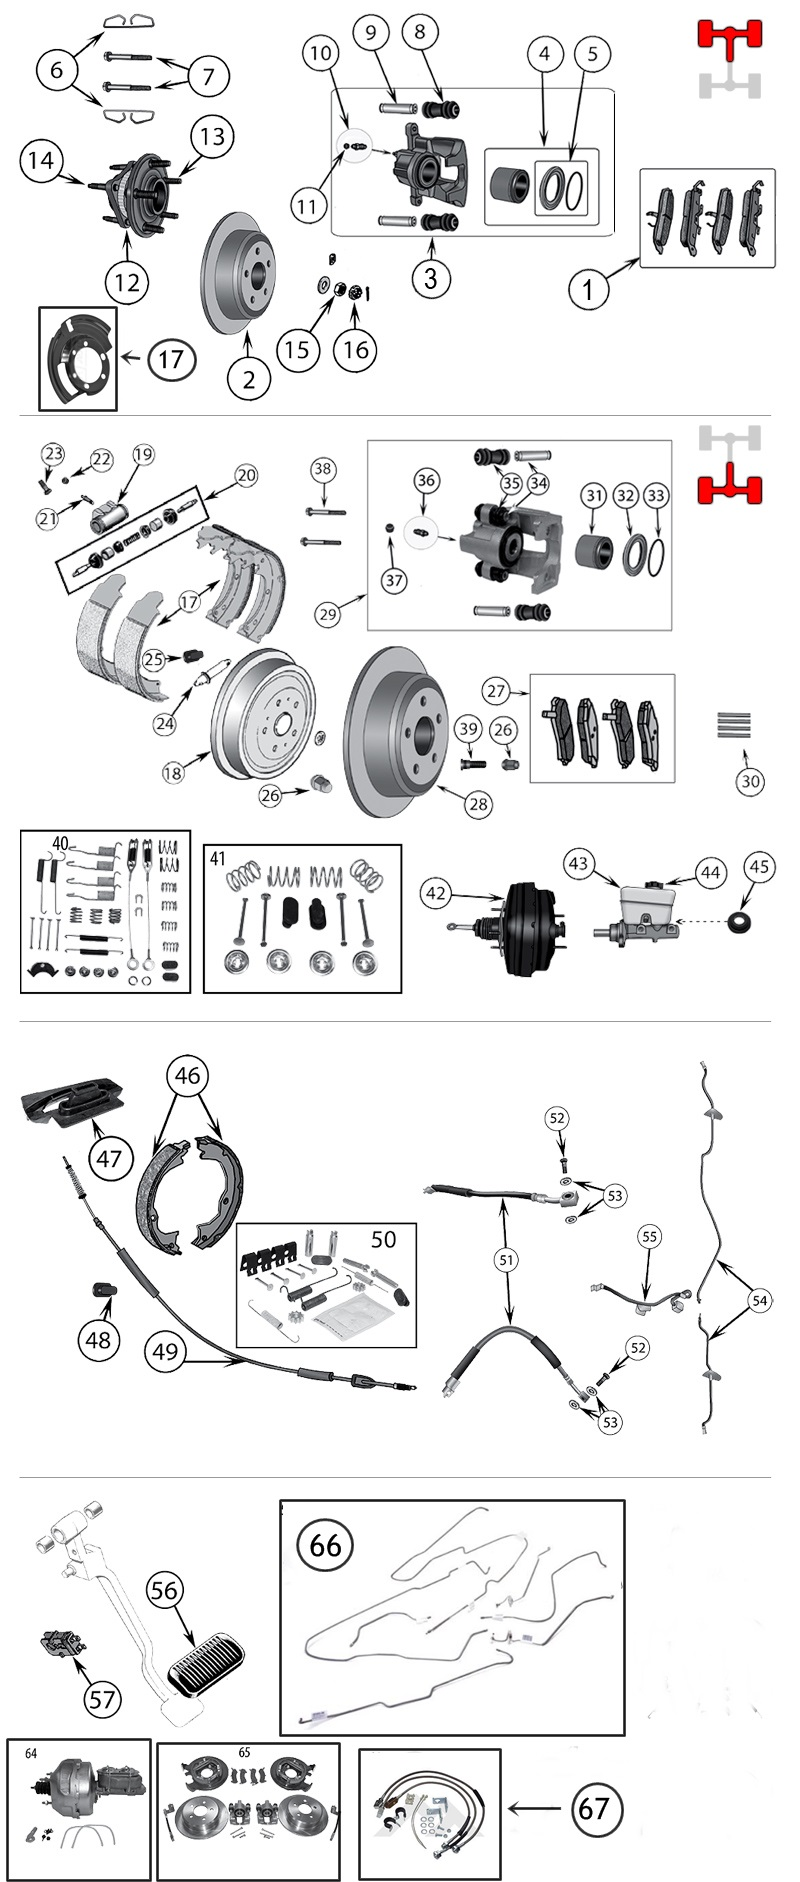 Brake Parts for Jeep Wrangler TJ